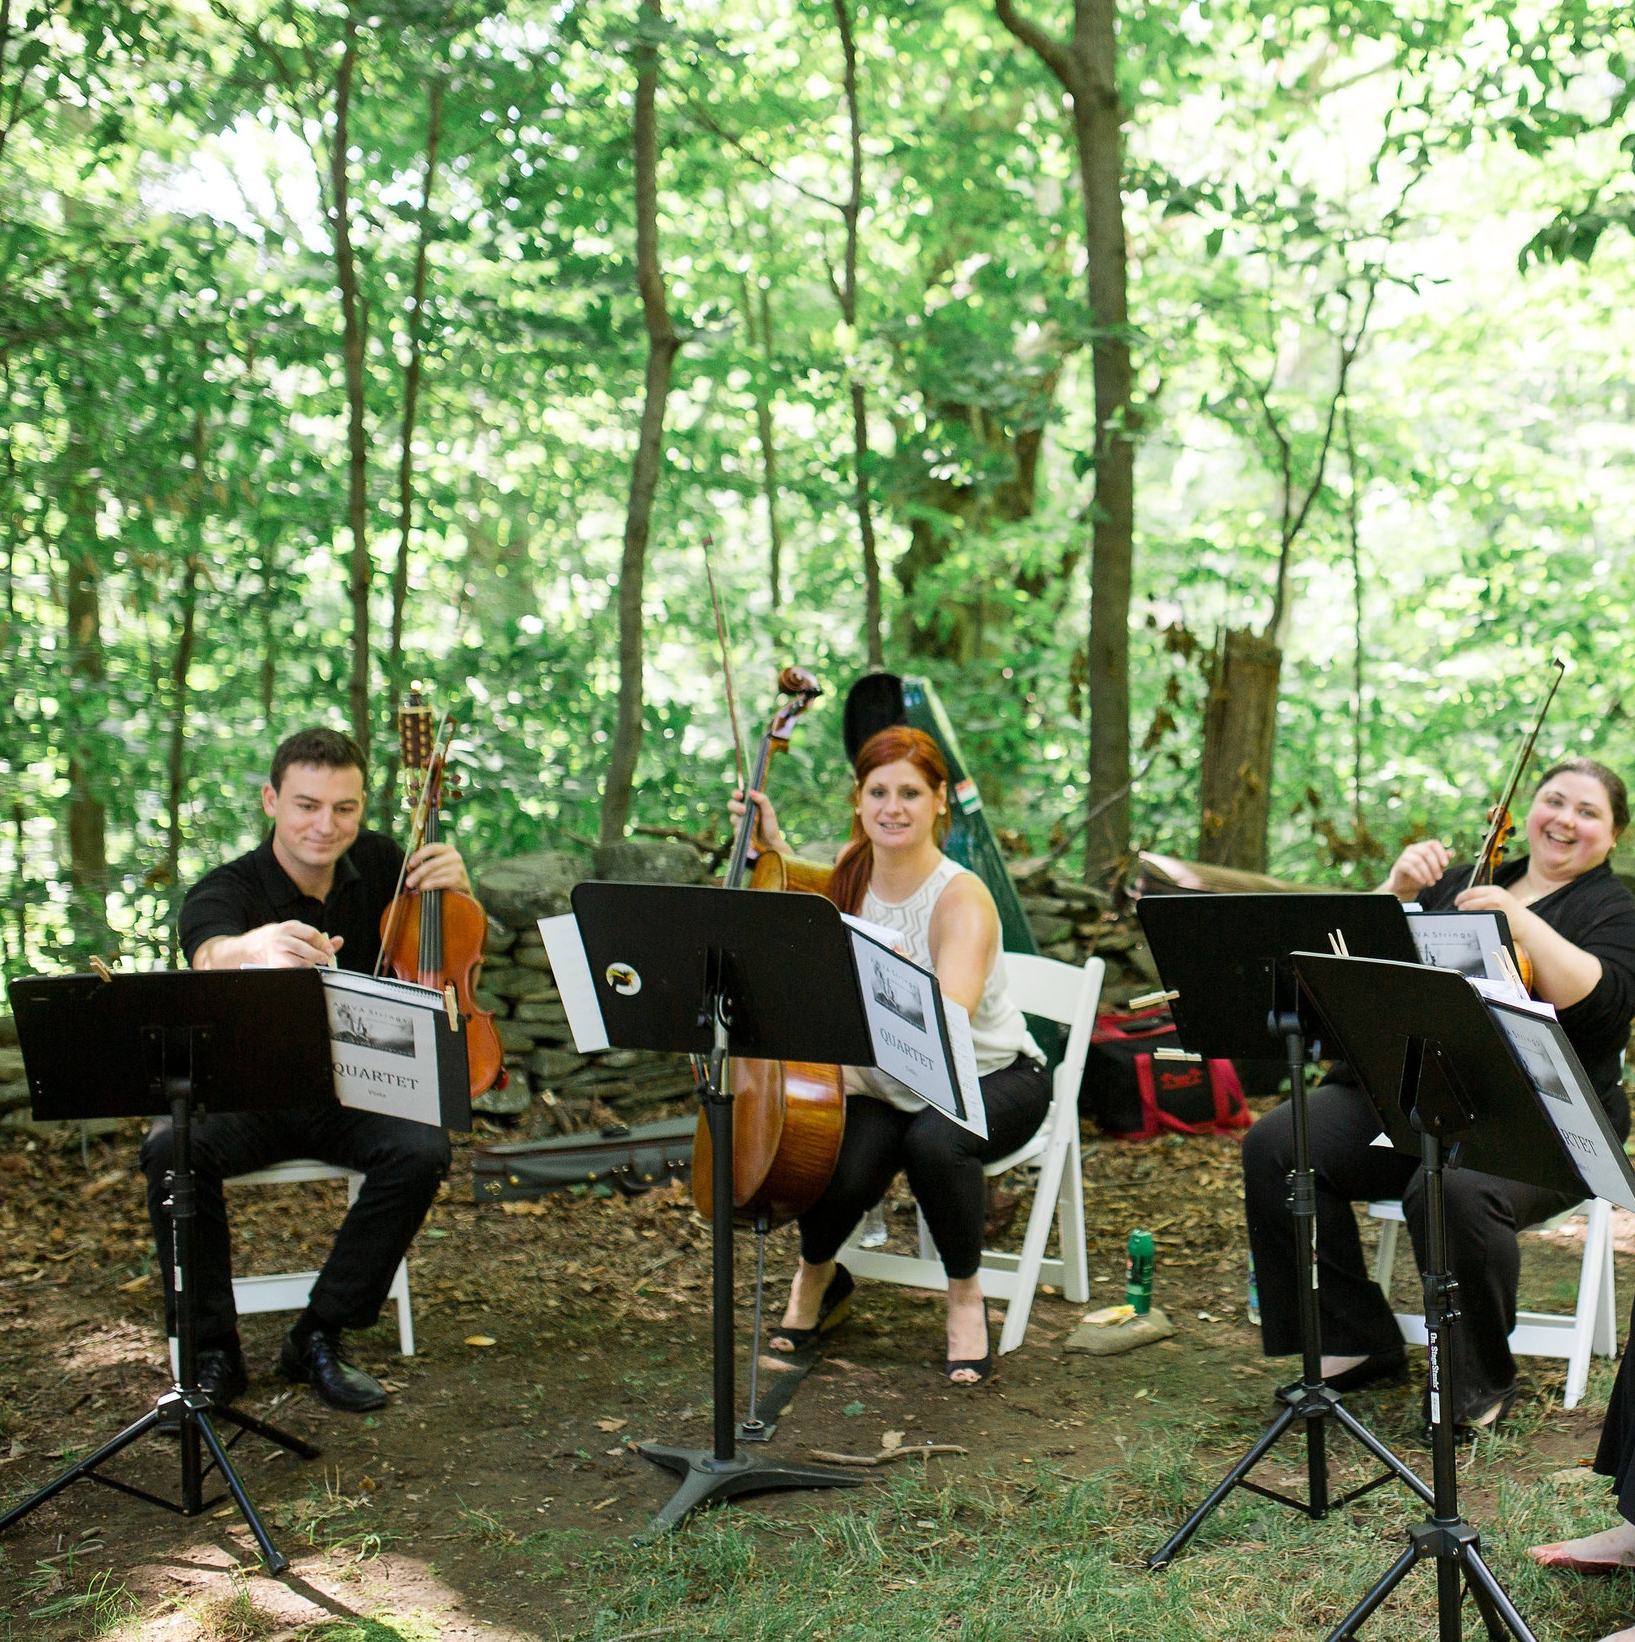 Gorgeous photo, courtesy of Danielle Coons Photography, of AVIVA Strings' quartet enjoying some pre-ceremony time in the woods!